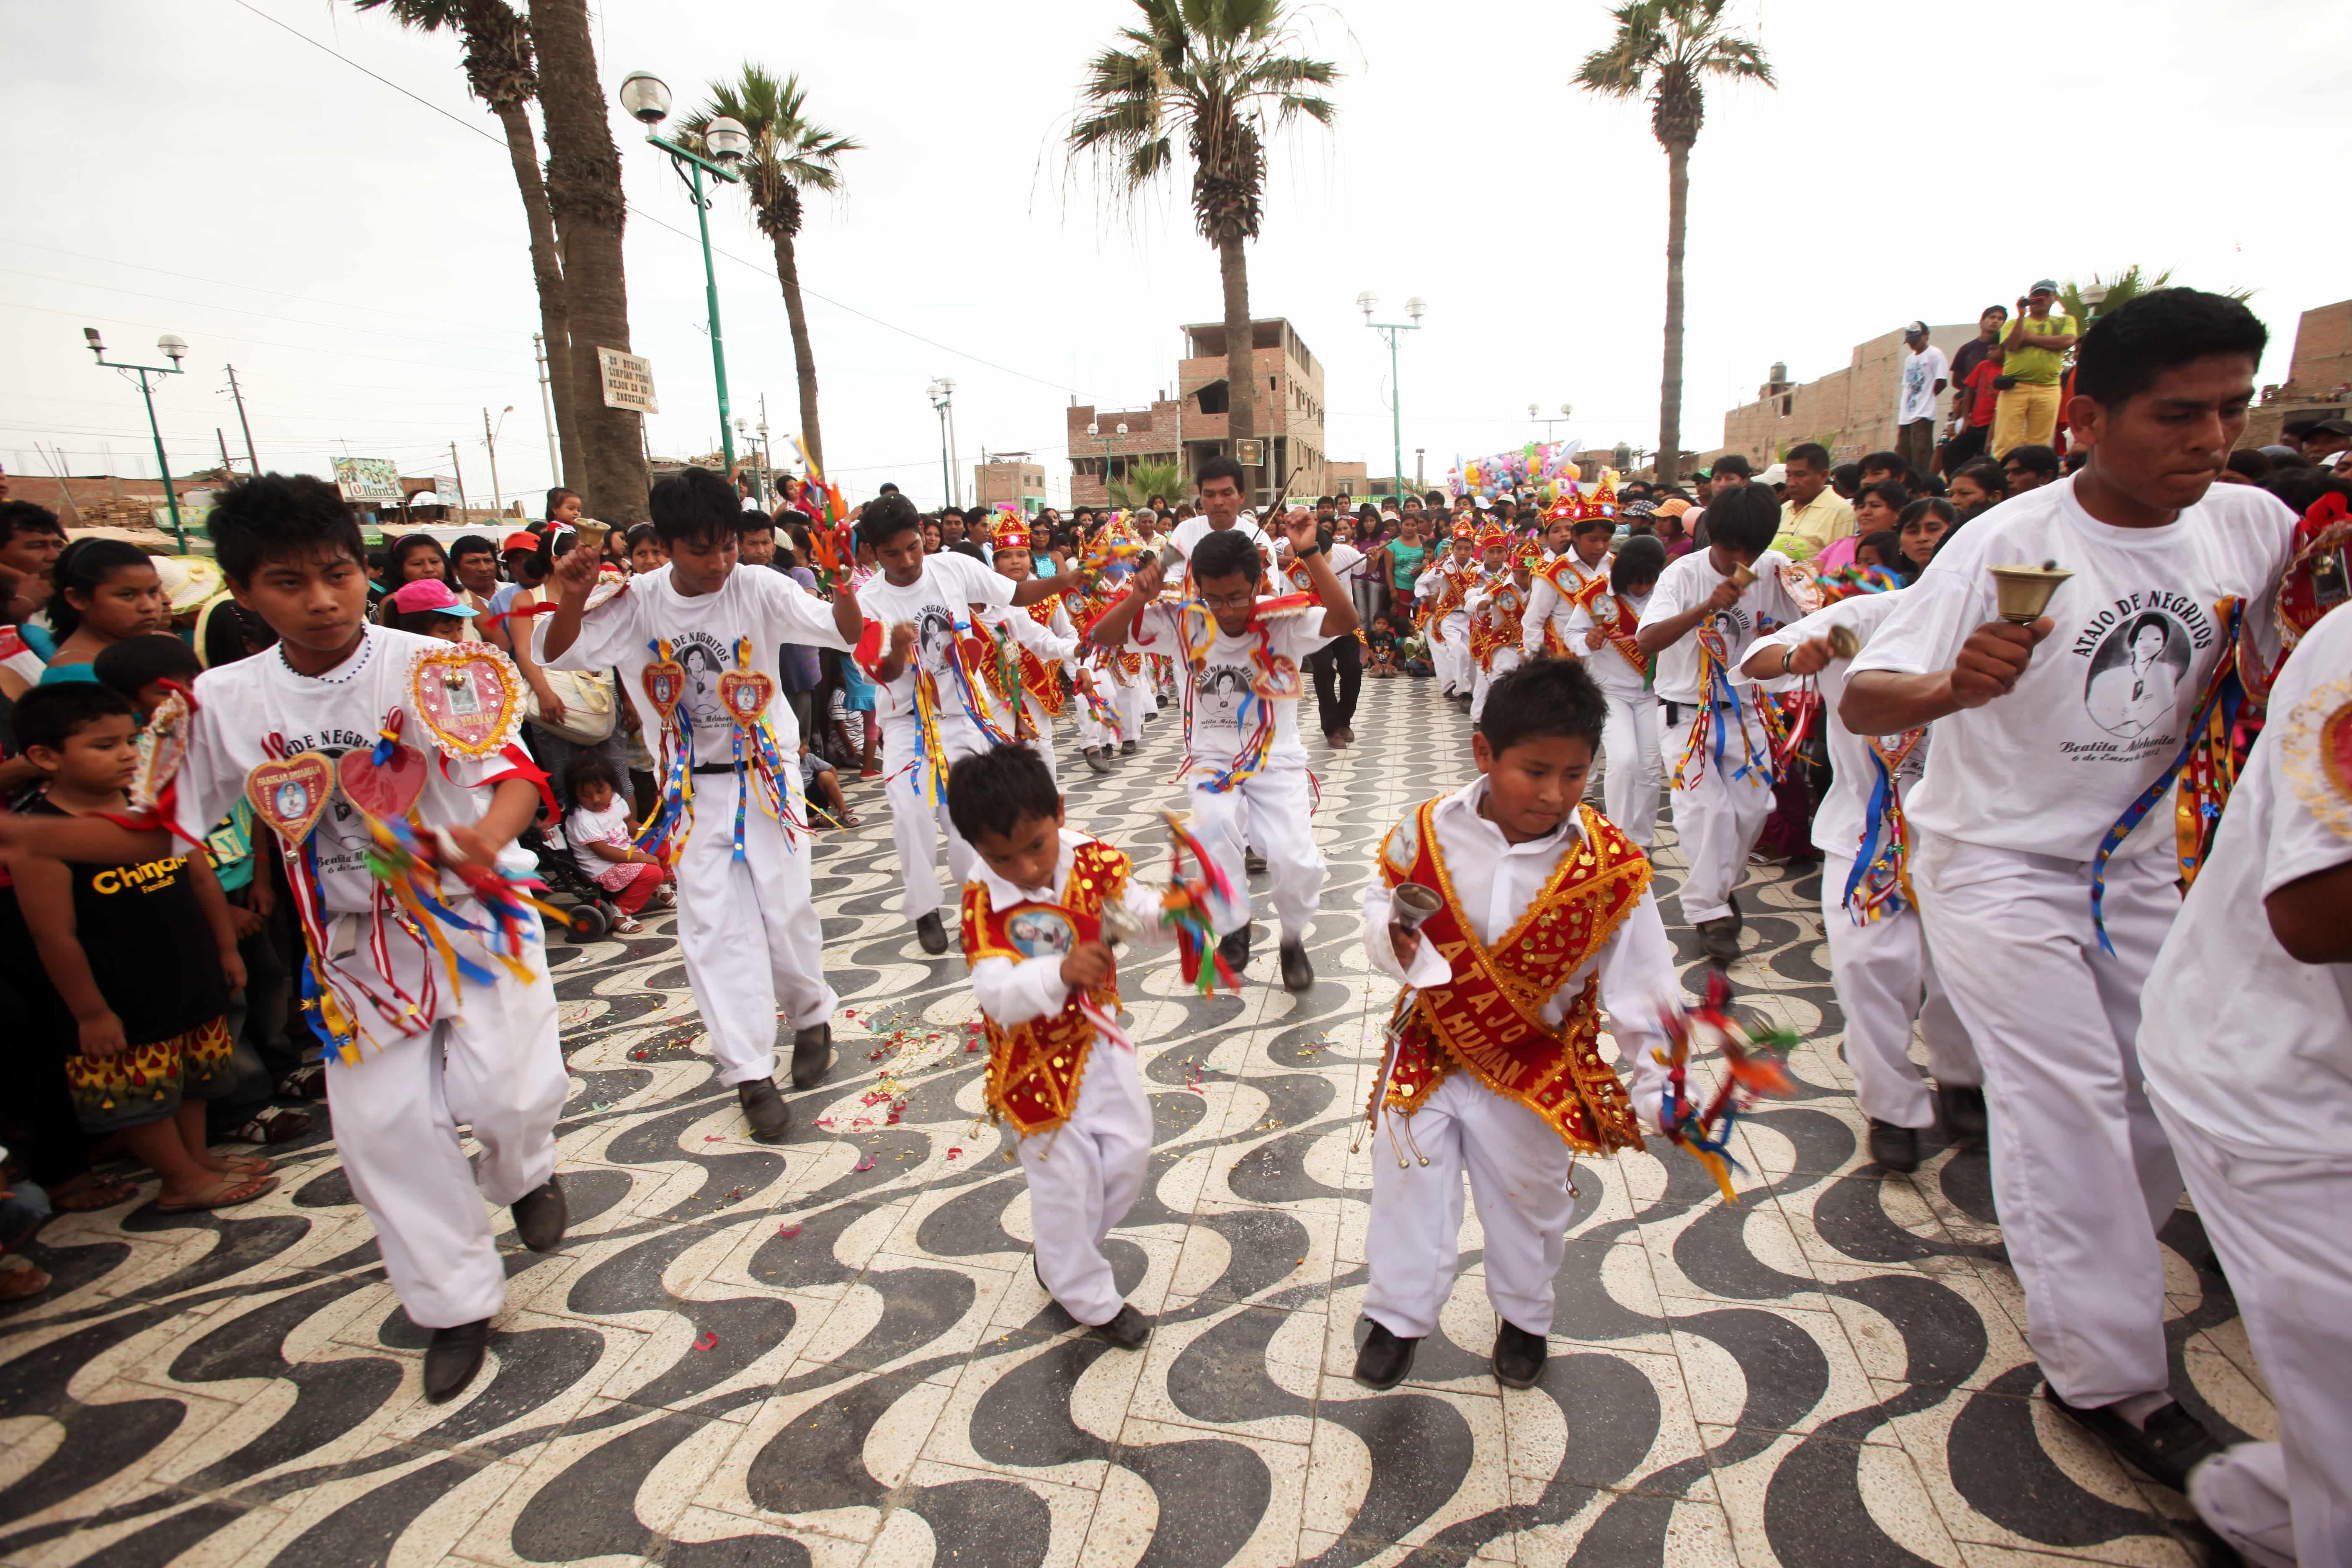 he hatajo de negritos is performed in town squares and in churches during December and January in preparation for Christmas, the Epiphany, the Festivity of the Virgin of El Carmen and the visit to Melchorita, the Servant of God